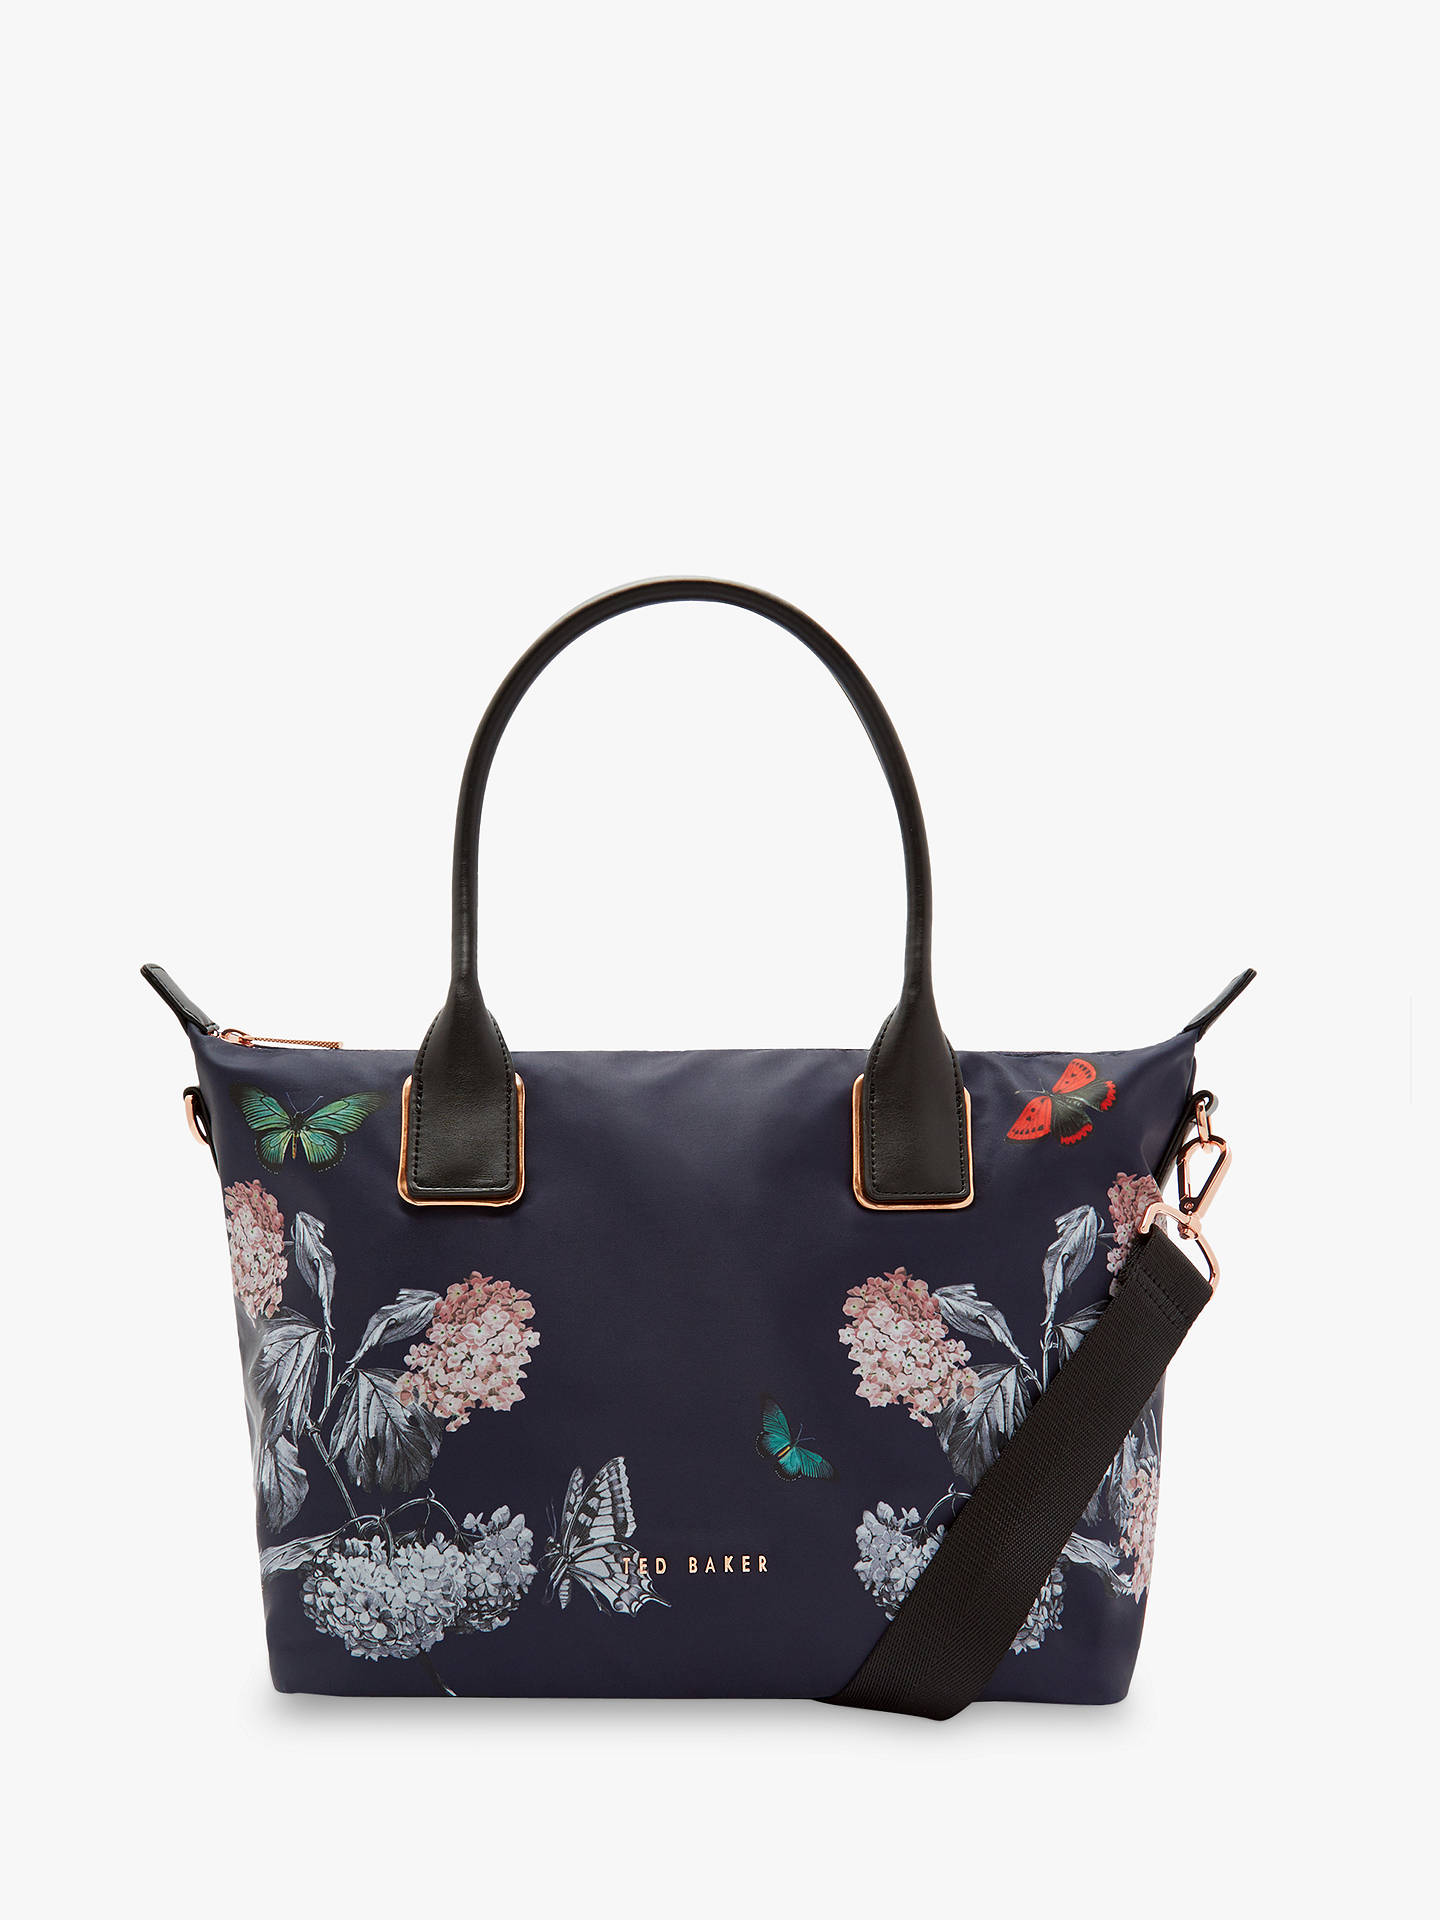 BuyTed Baker Marucha Small Tote Bag, Multi/Blue Online at johnlewis.com